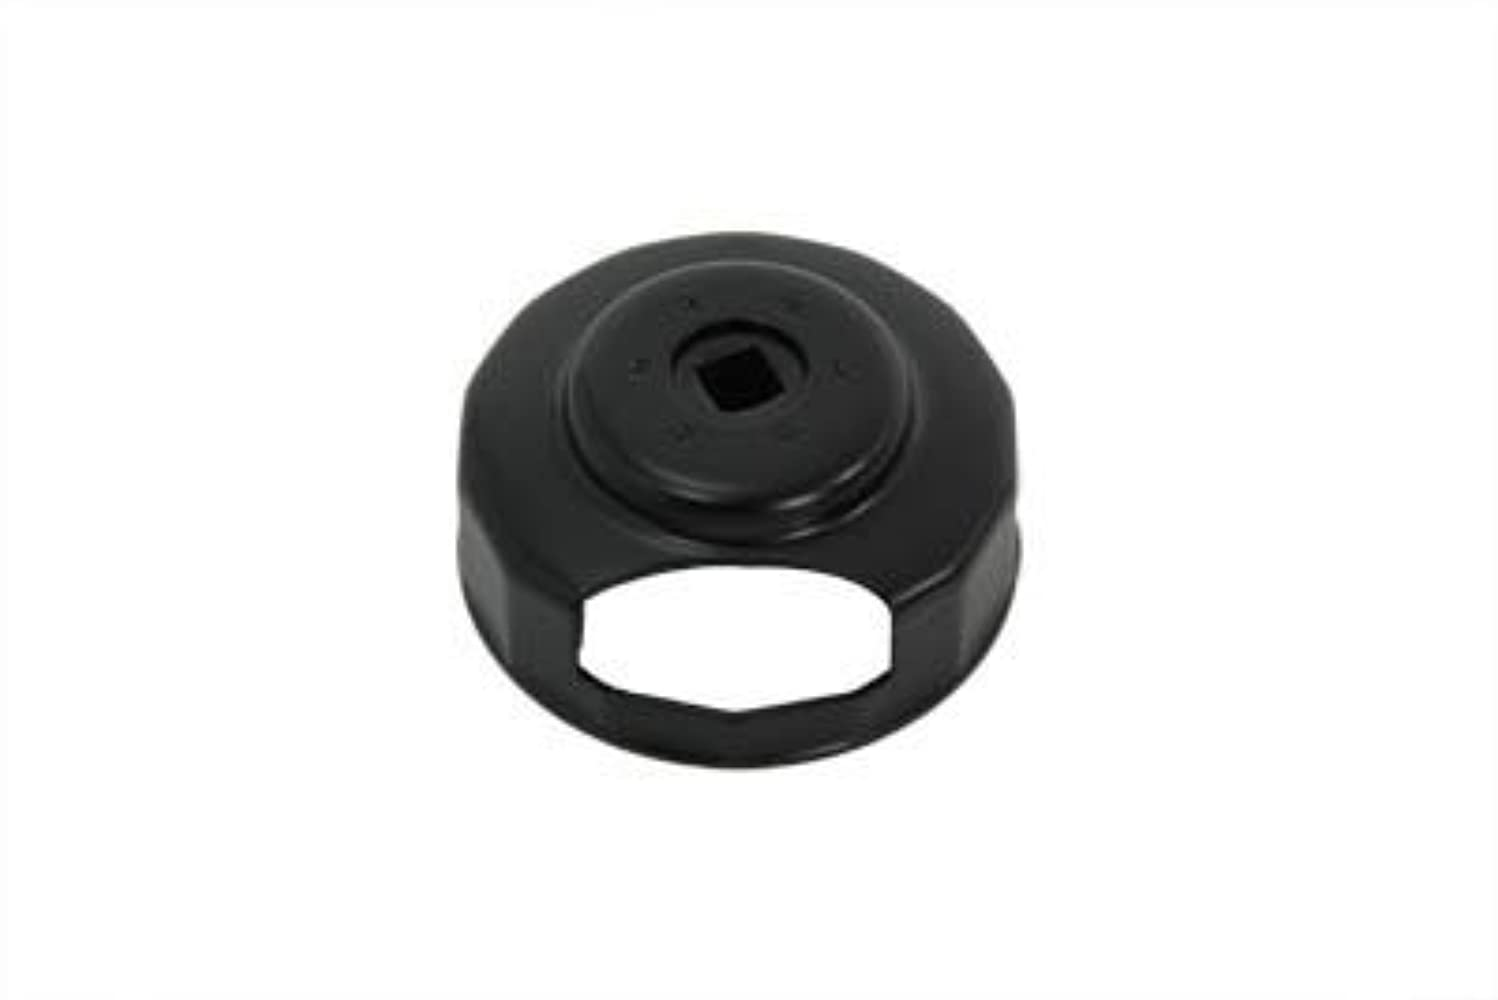 V-Twin 16-0743 - Oil Filter Wrench Tool